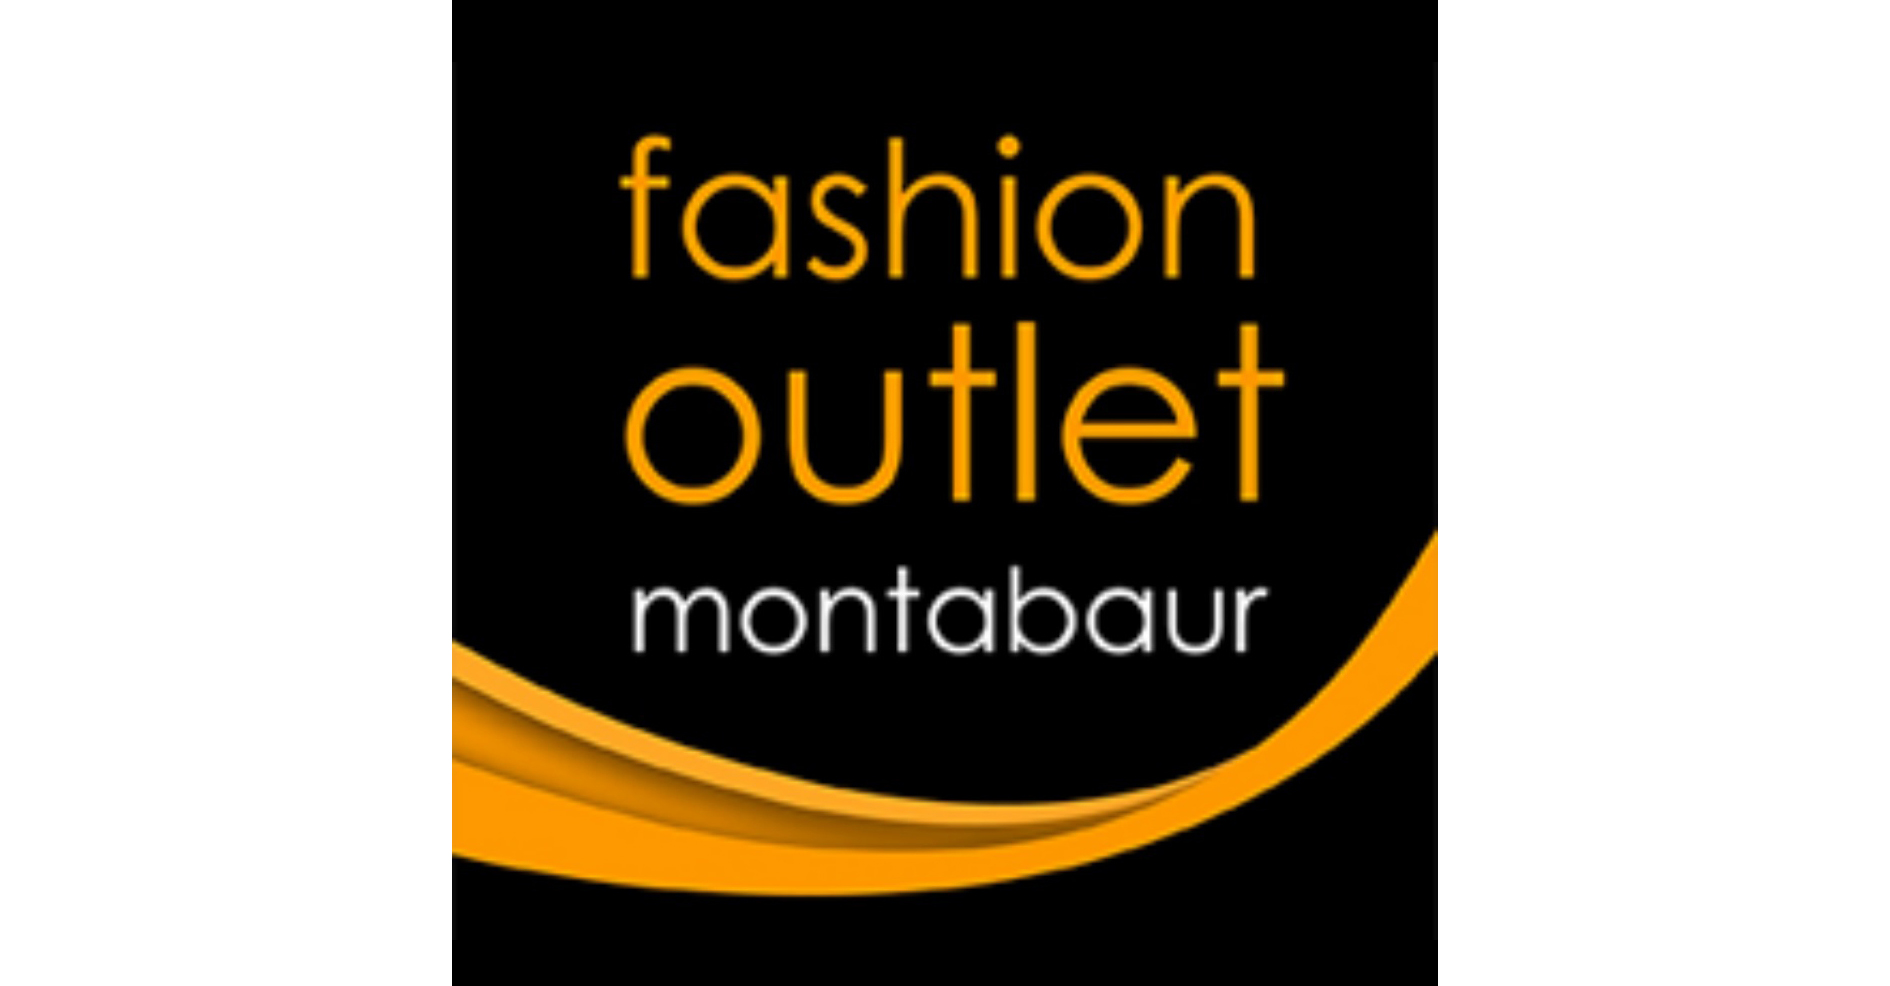 Fashion Outlet Montabaur